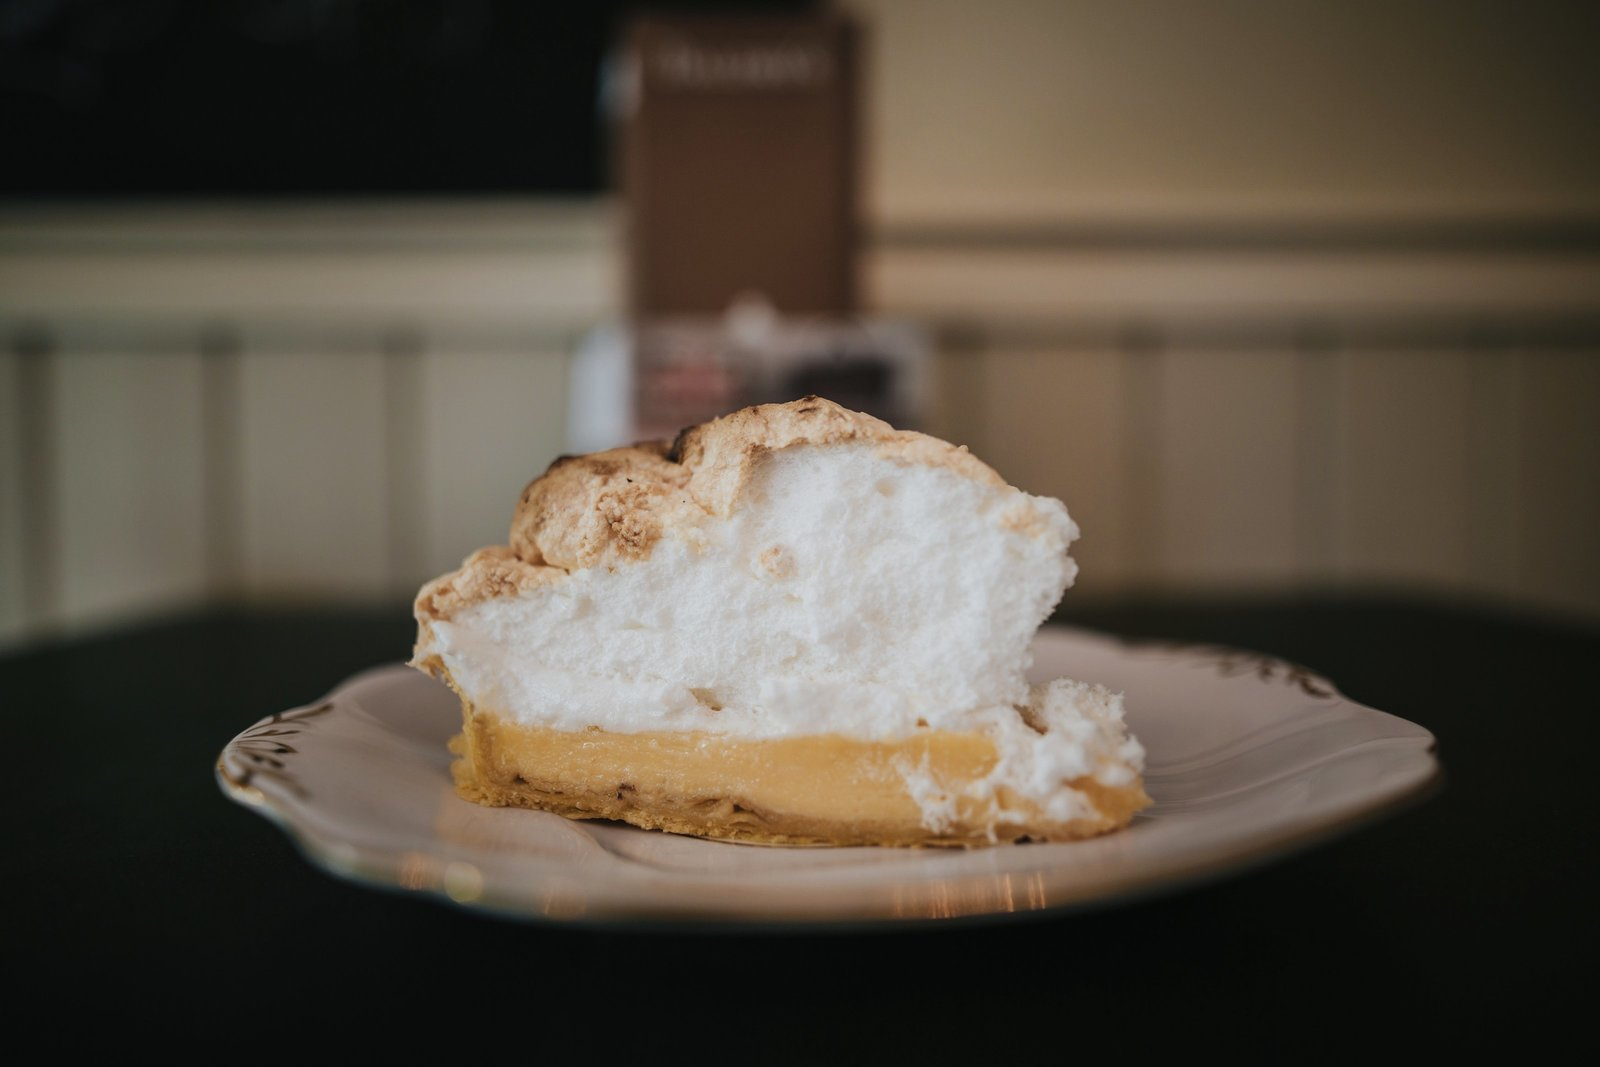 Baldry's Tearoom famous Lemon Meringue Pie